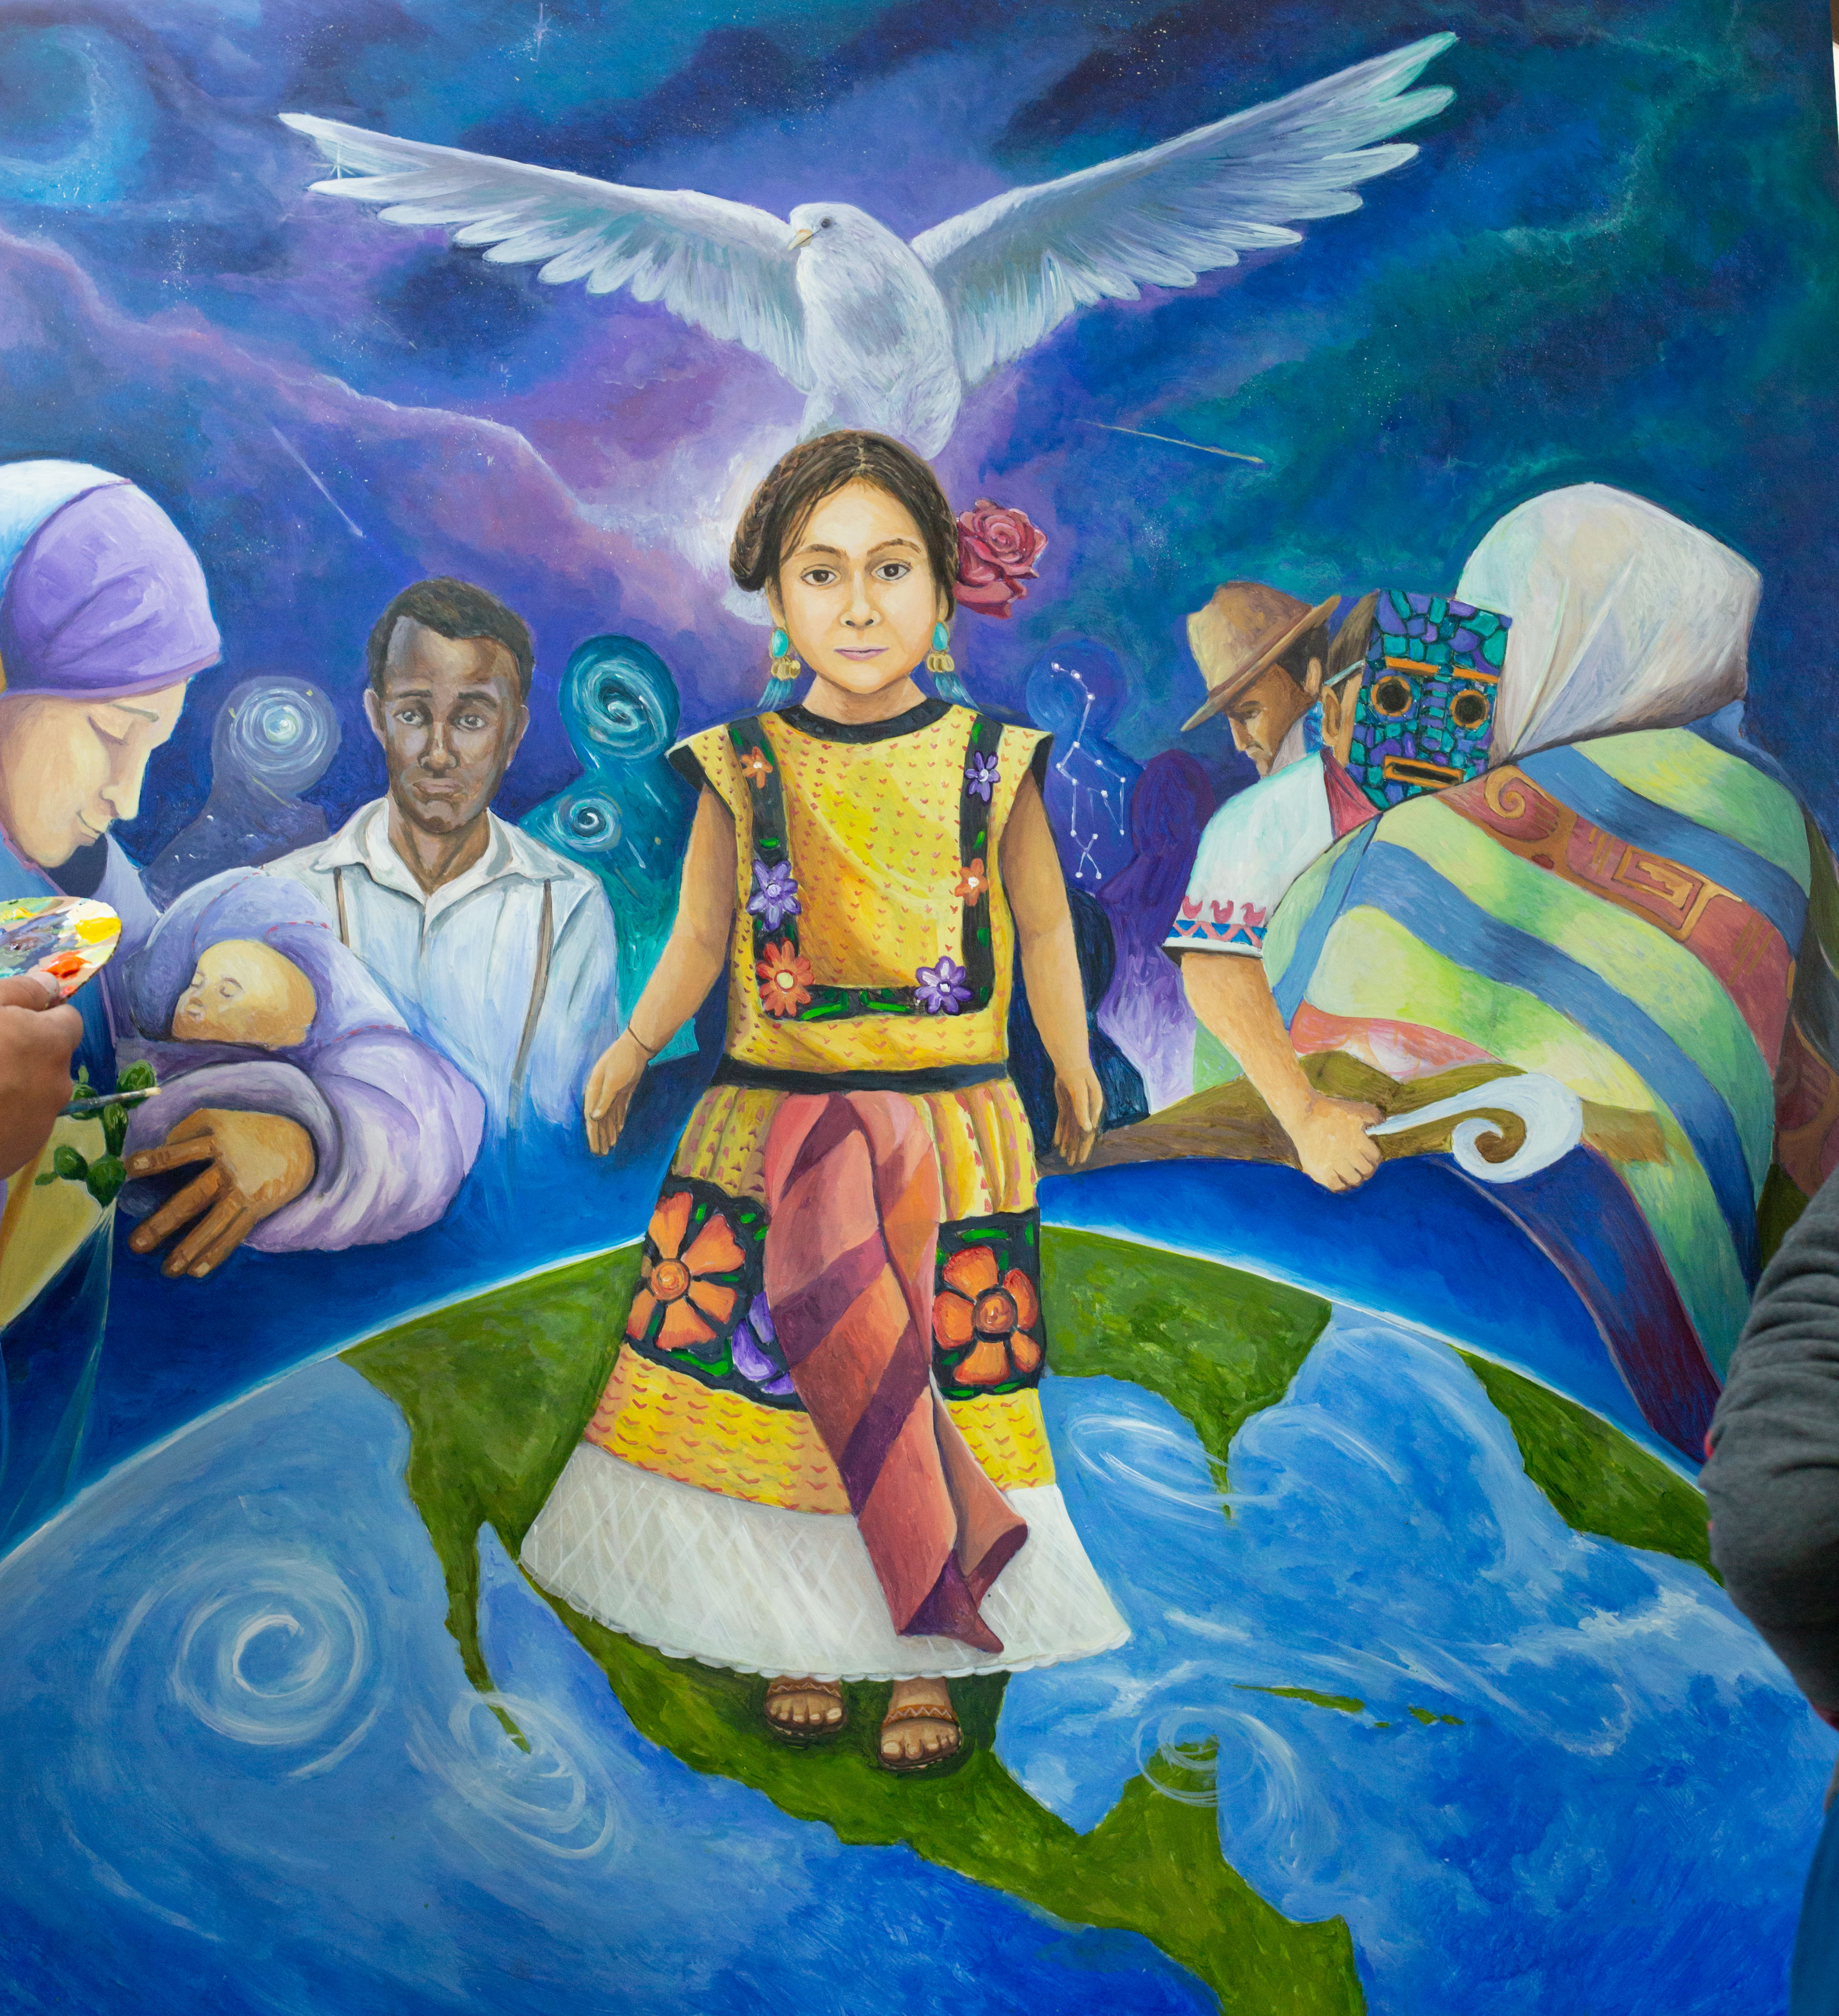 Image of young migrant child from Canal Alliance mural